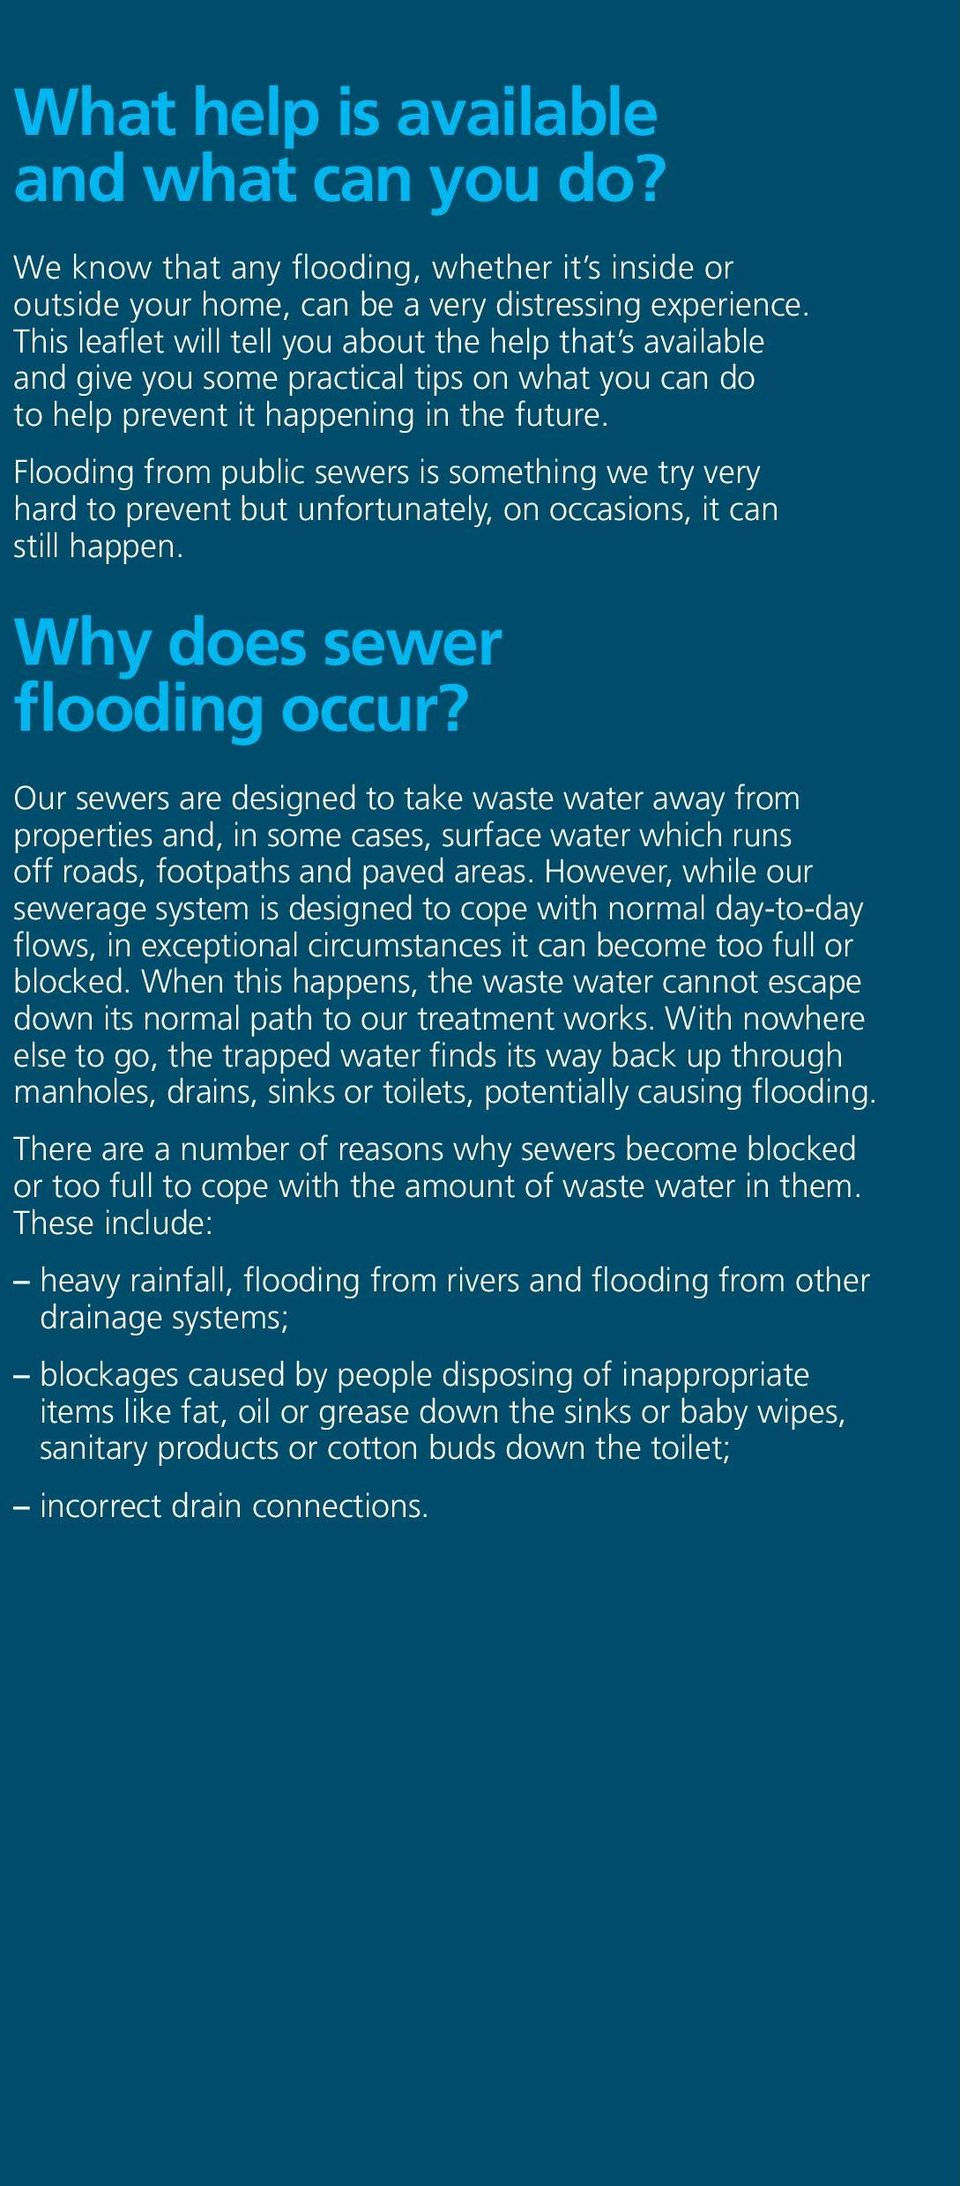 Flooding from public sewers is something we try very hard to prevent but unfortunately, on occasions, it can still happen. Why does sewer flooding occur?